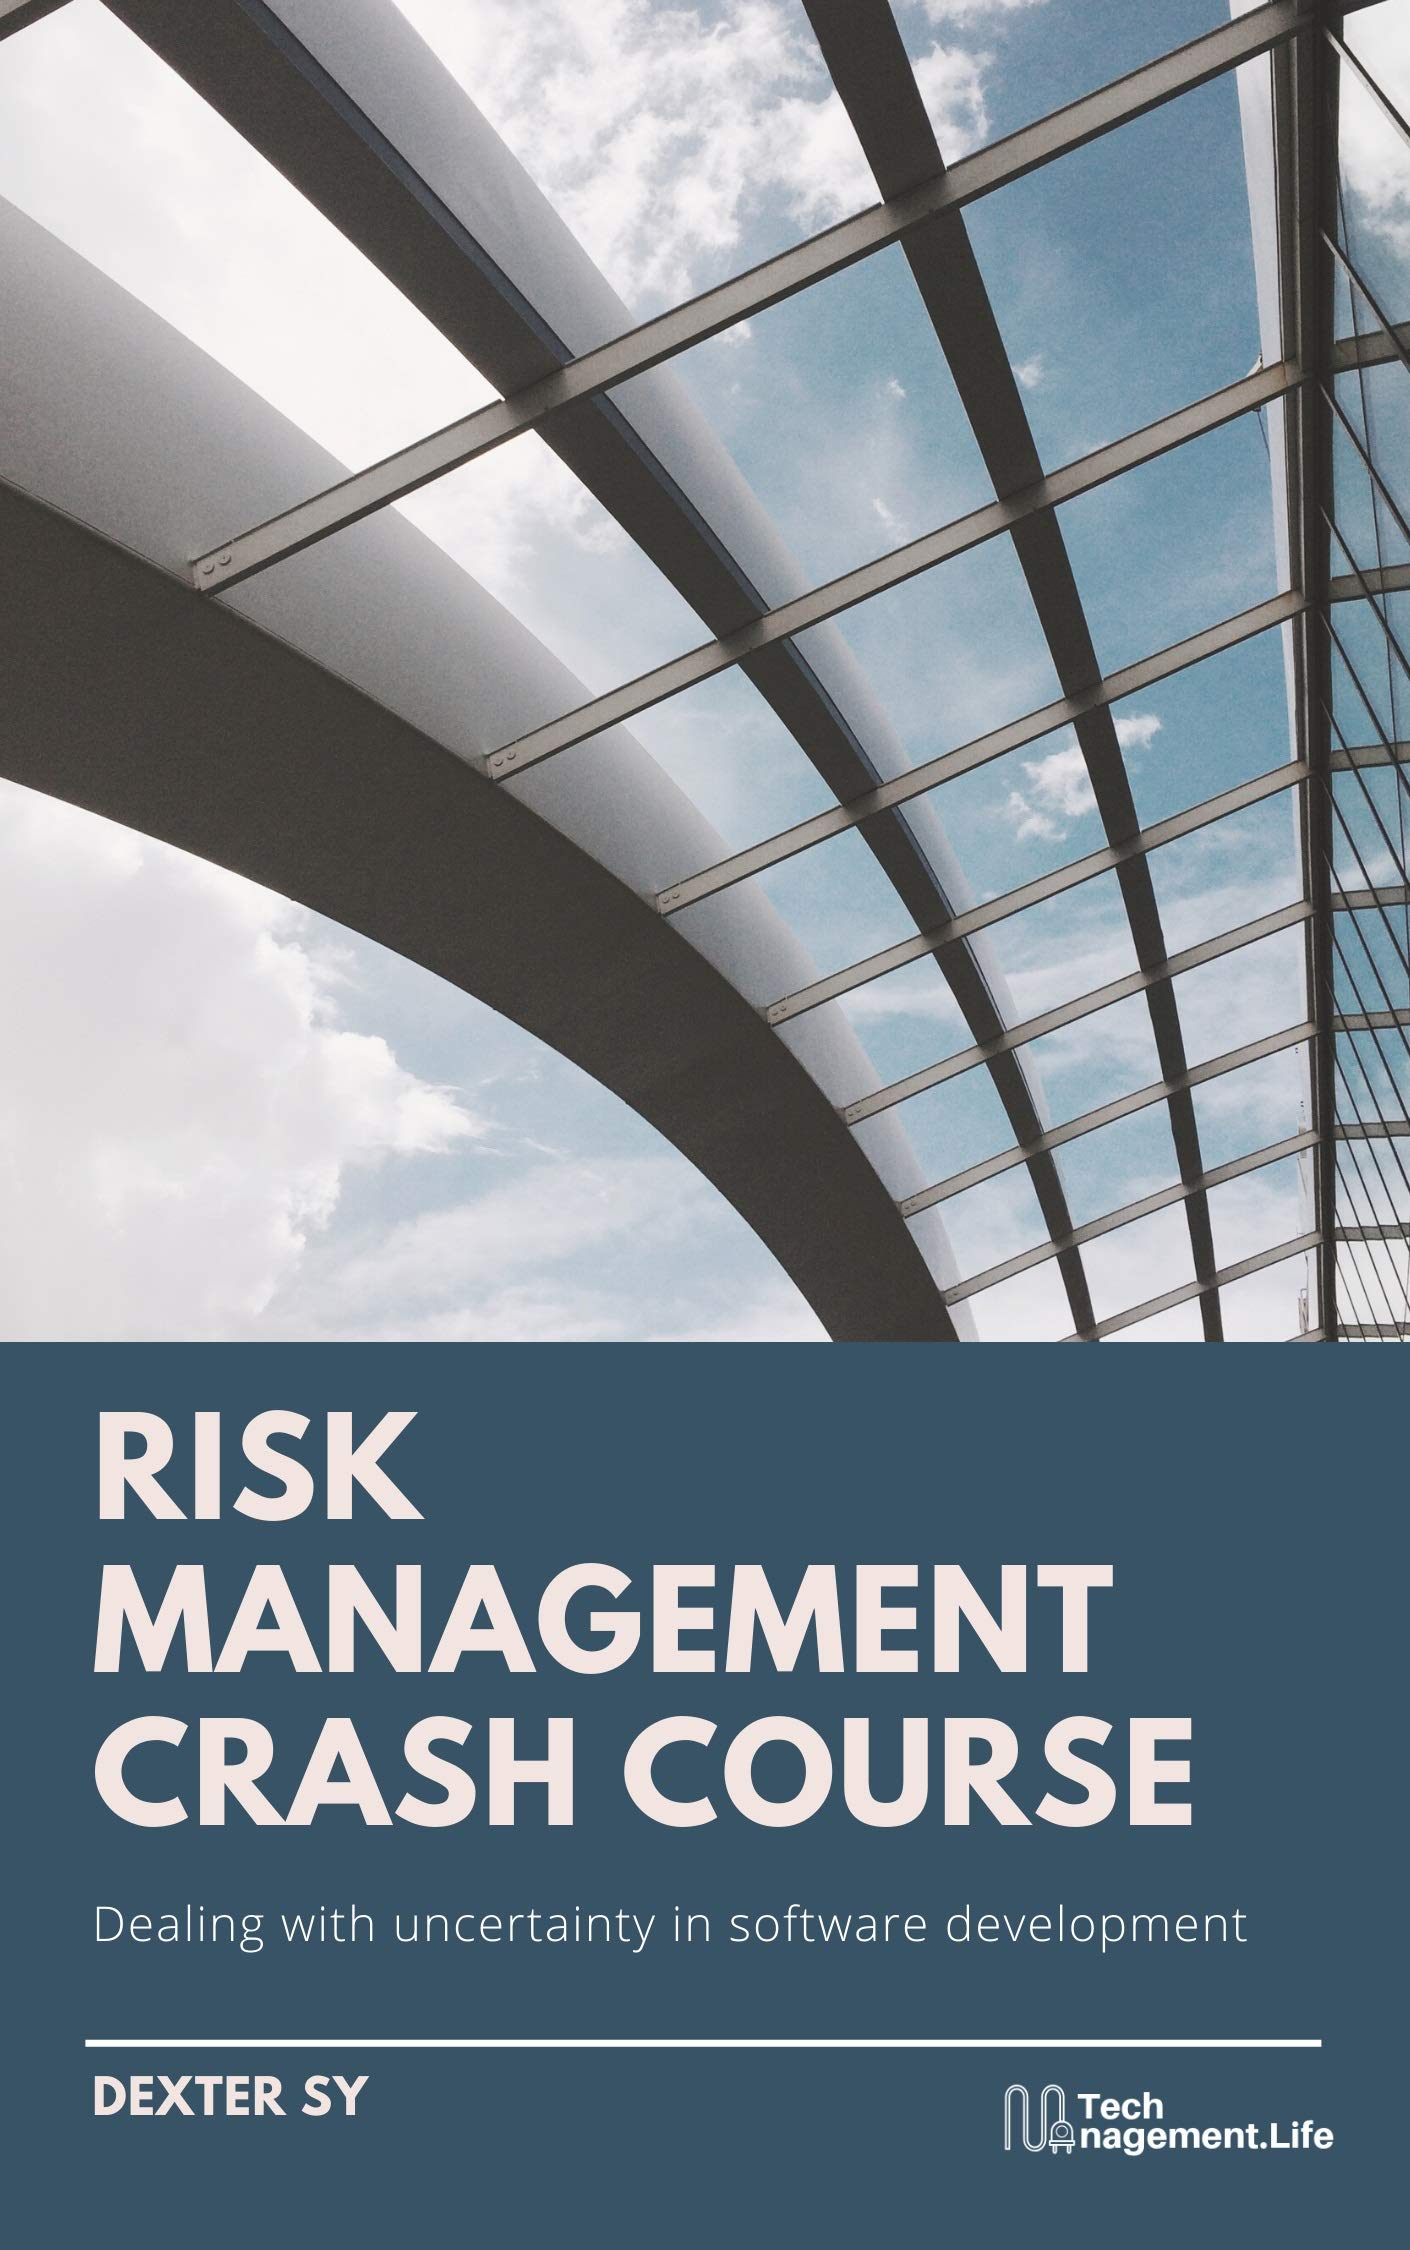 Risk Management Crash Course: Dealing with uncertainty in software development